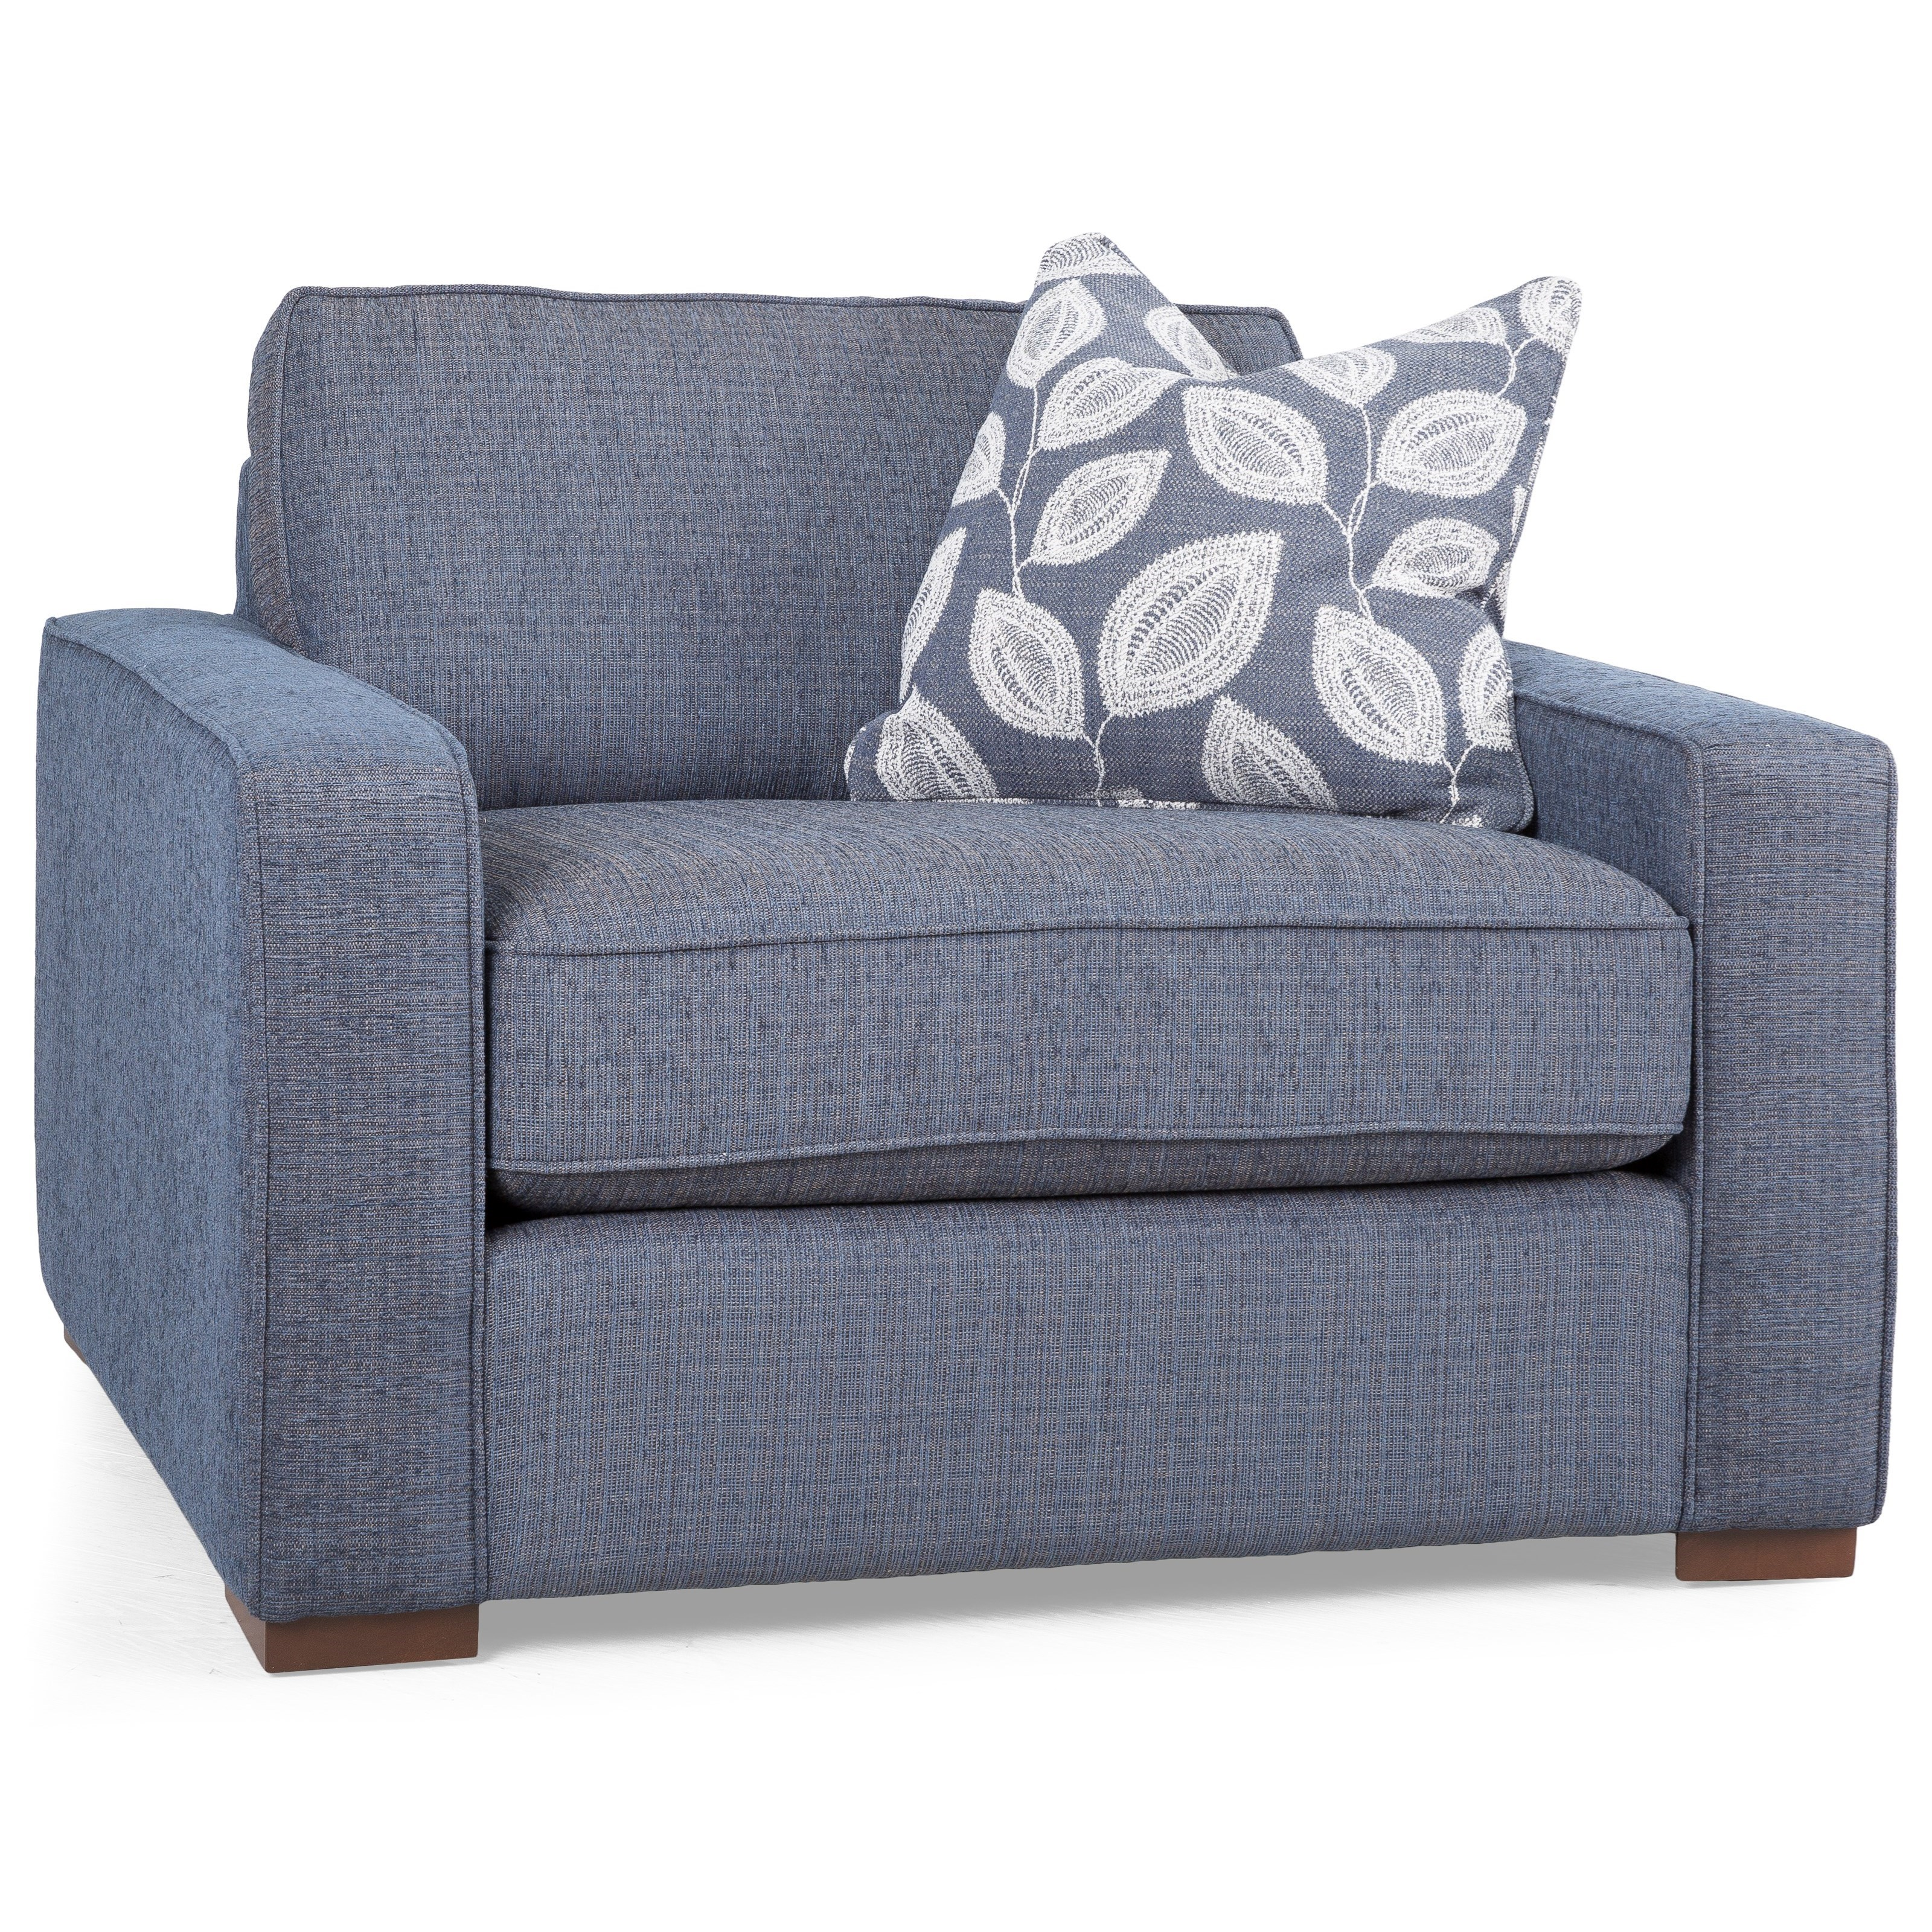 2591 Chair and a Half by Decor-Rest at Rooms for Less